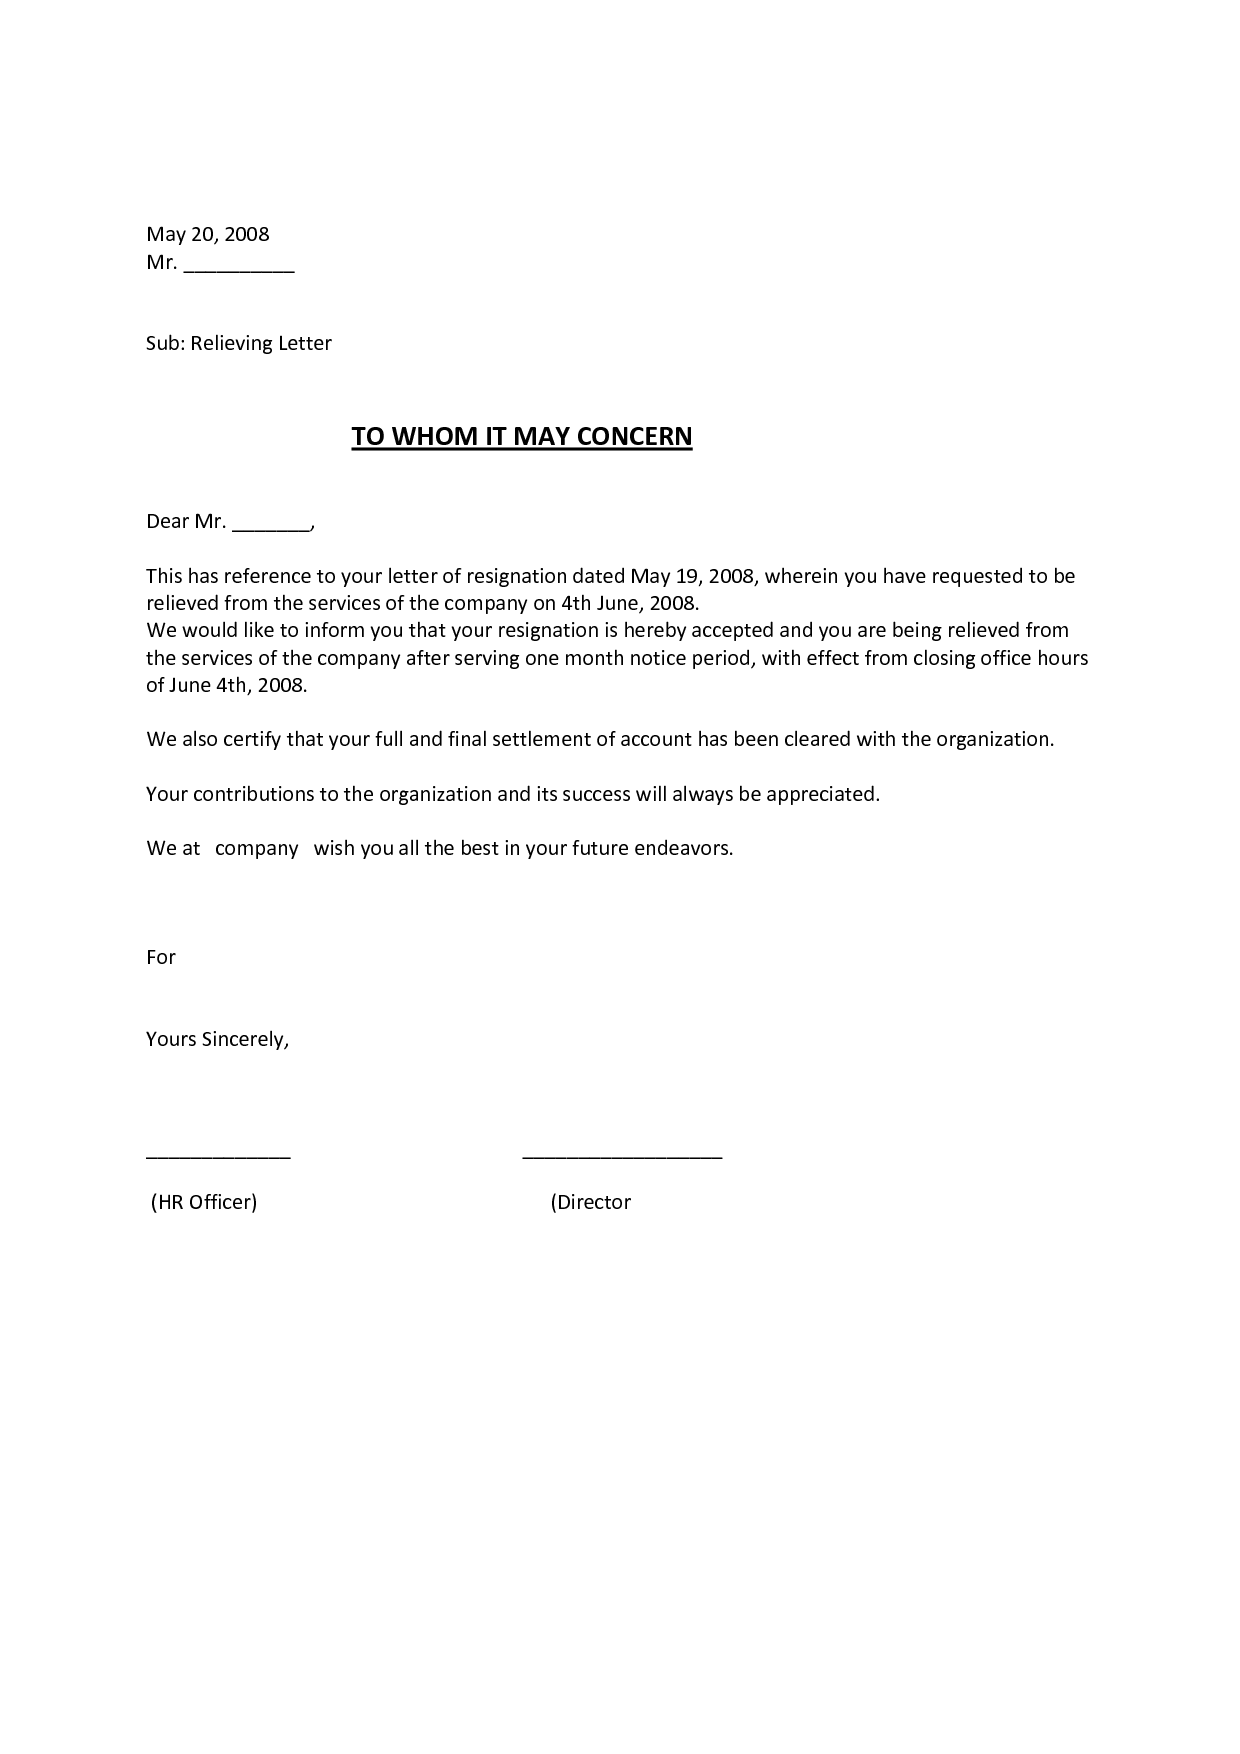 Relieving letter format for employee free download hr letter employee relieving letter a relieving letter is meant to relieve the employee who is no longer associated with the company spiritdancerdesigns Images